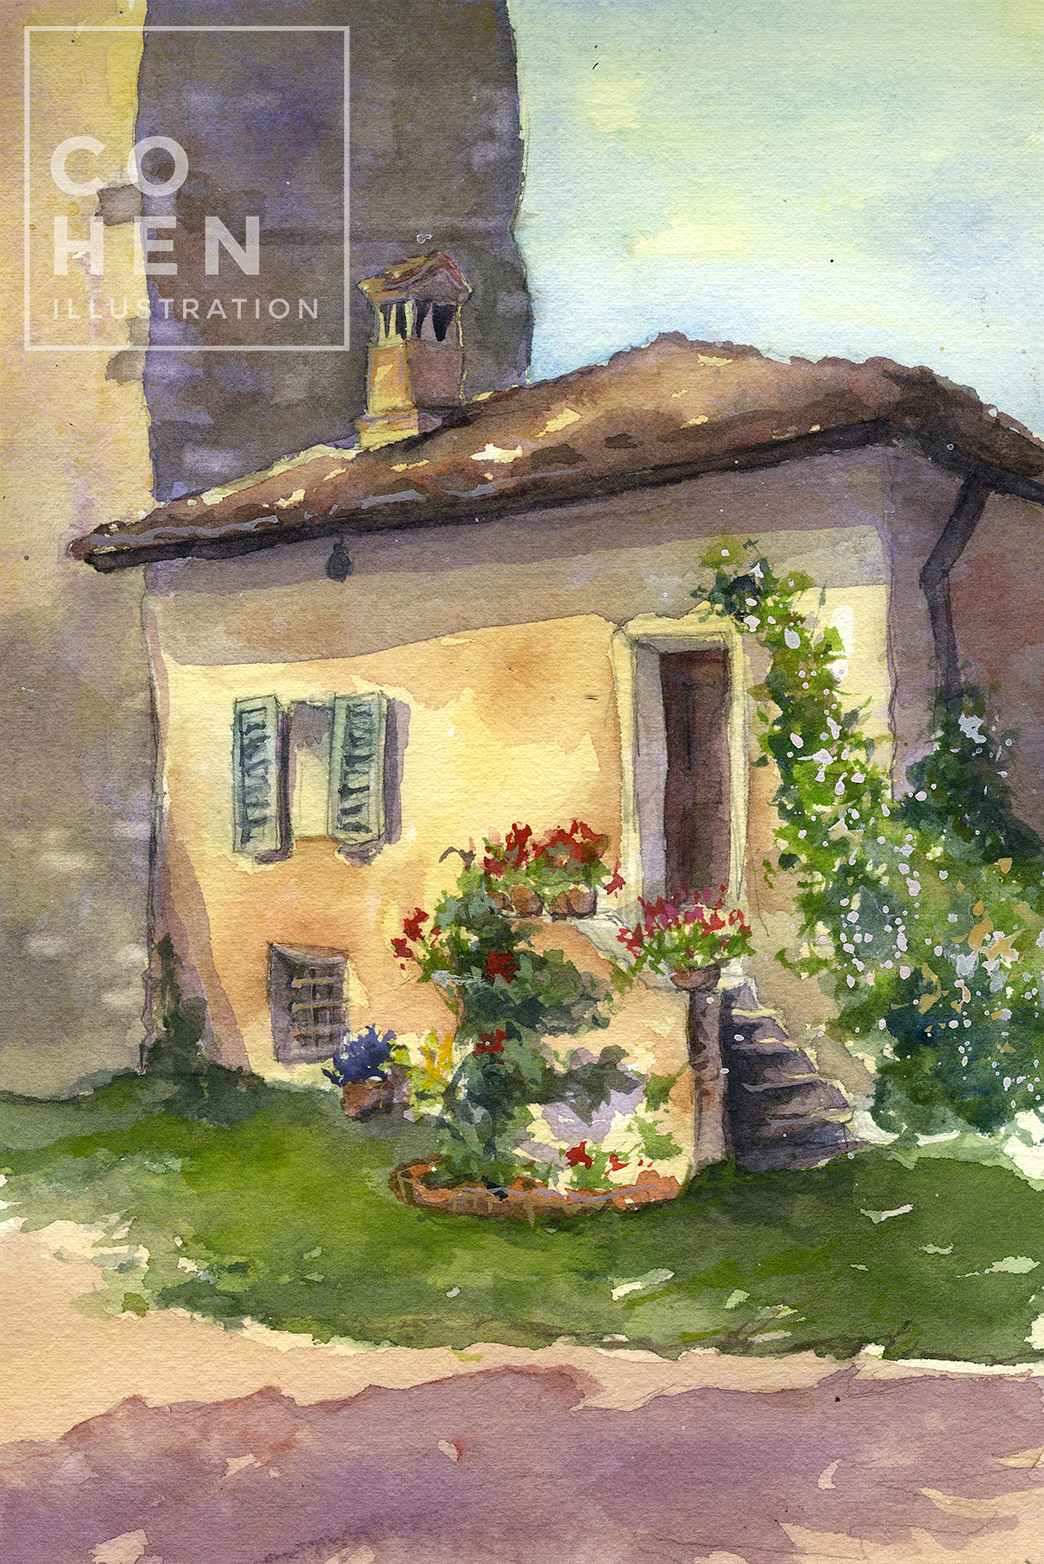 cohenillustration-tuscany-watercolor.jpg